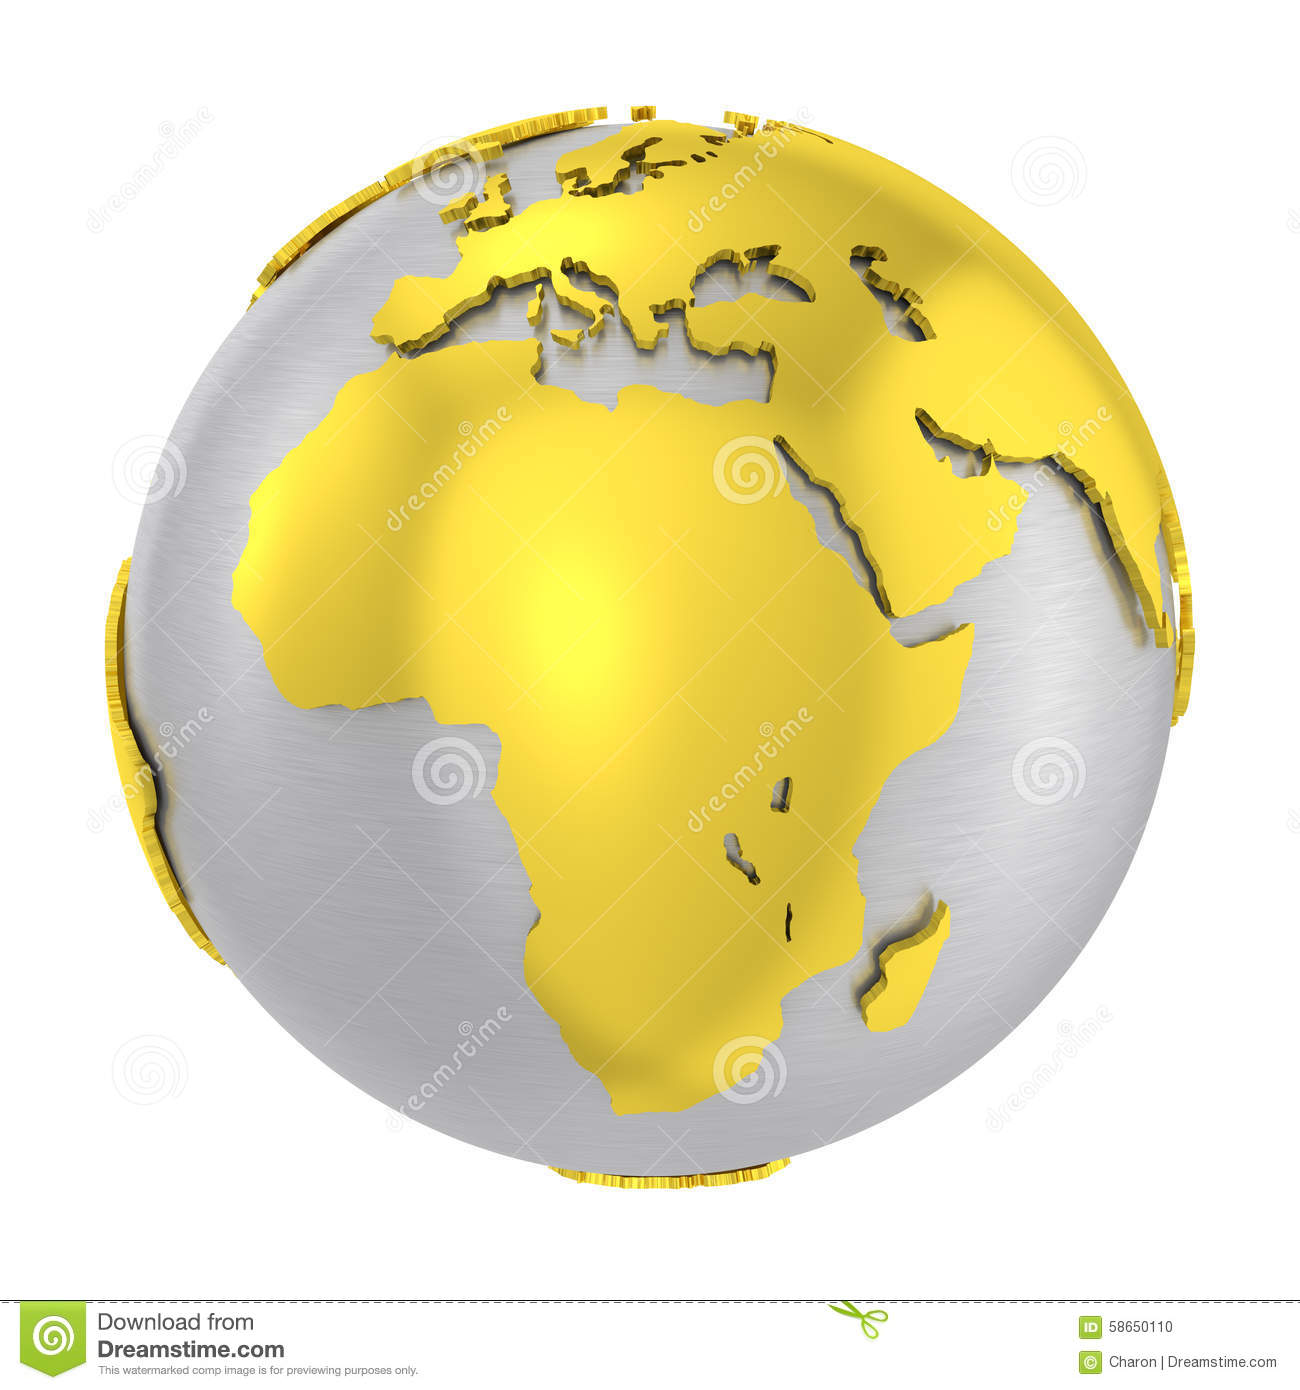 Brushed steel 3d globe gold earth crust stock photo illustration brushed steel 3d globe gold earth crust gumiabroncs Gallery